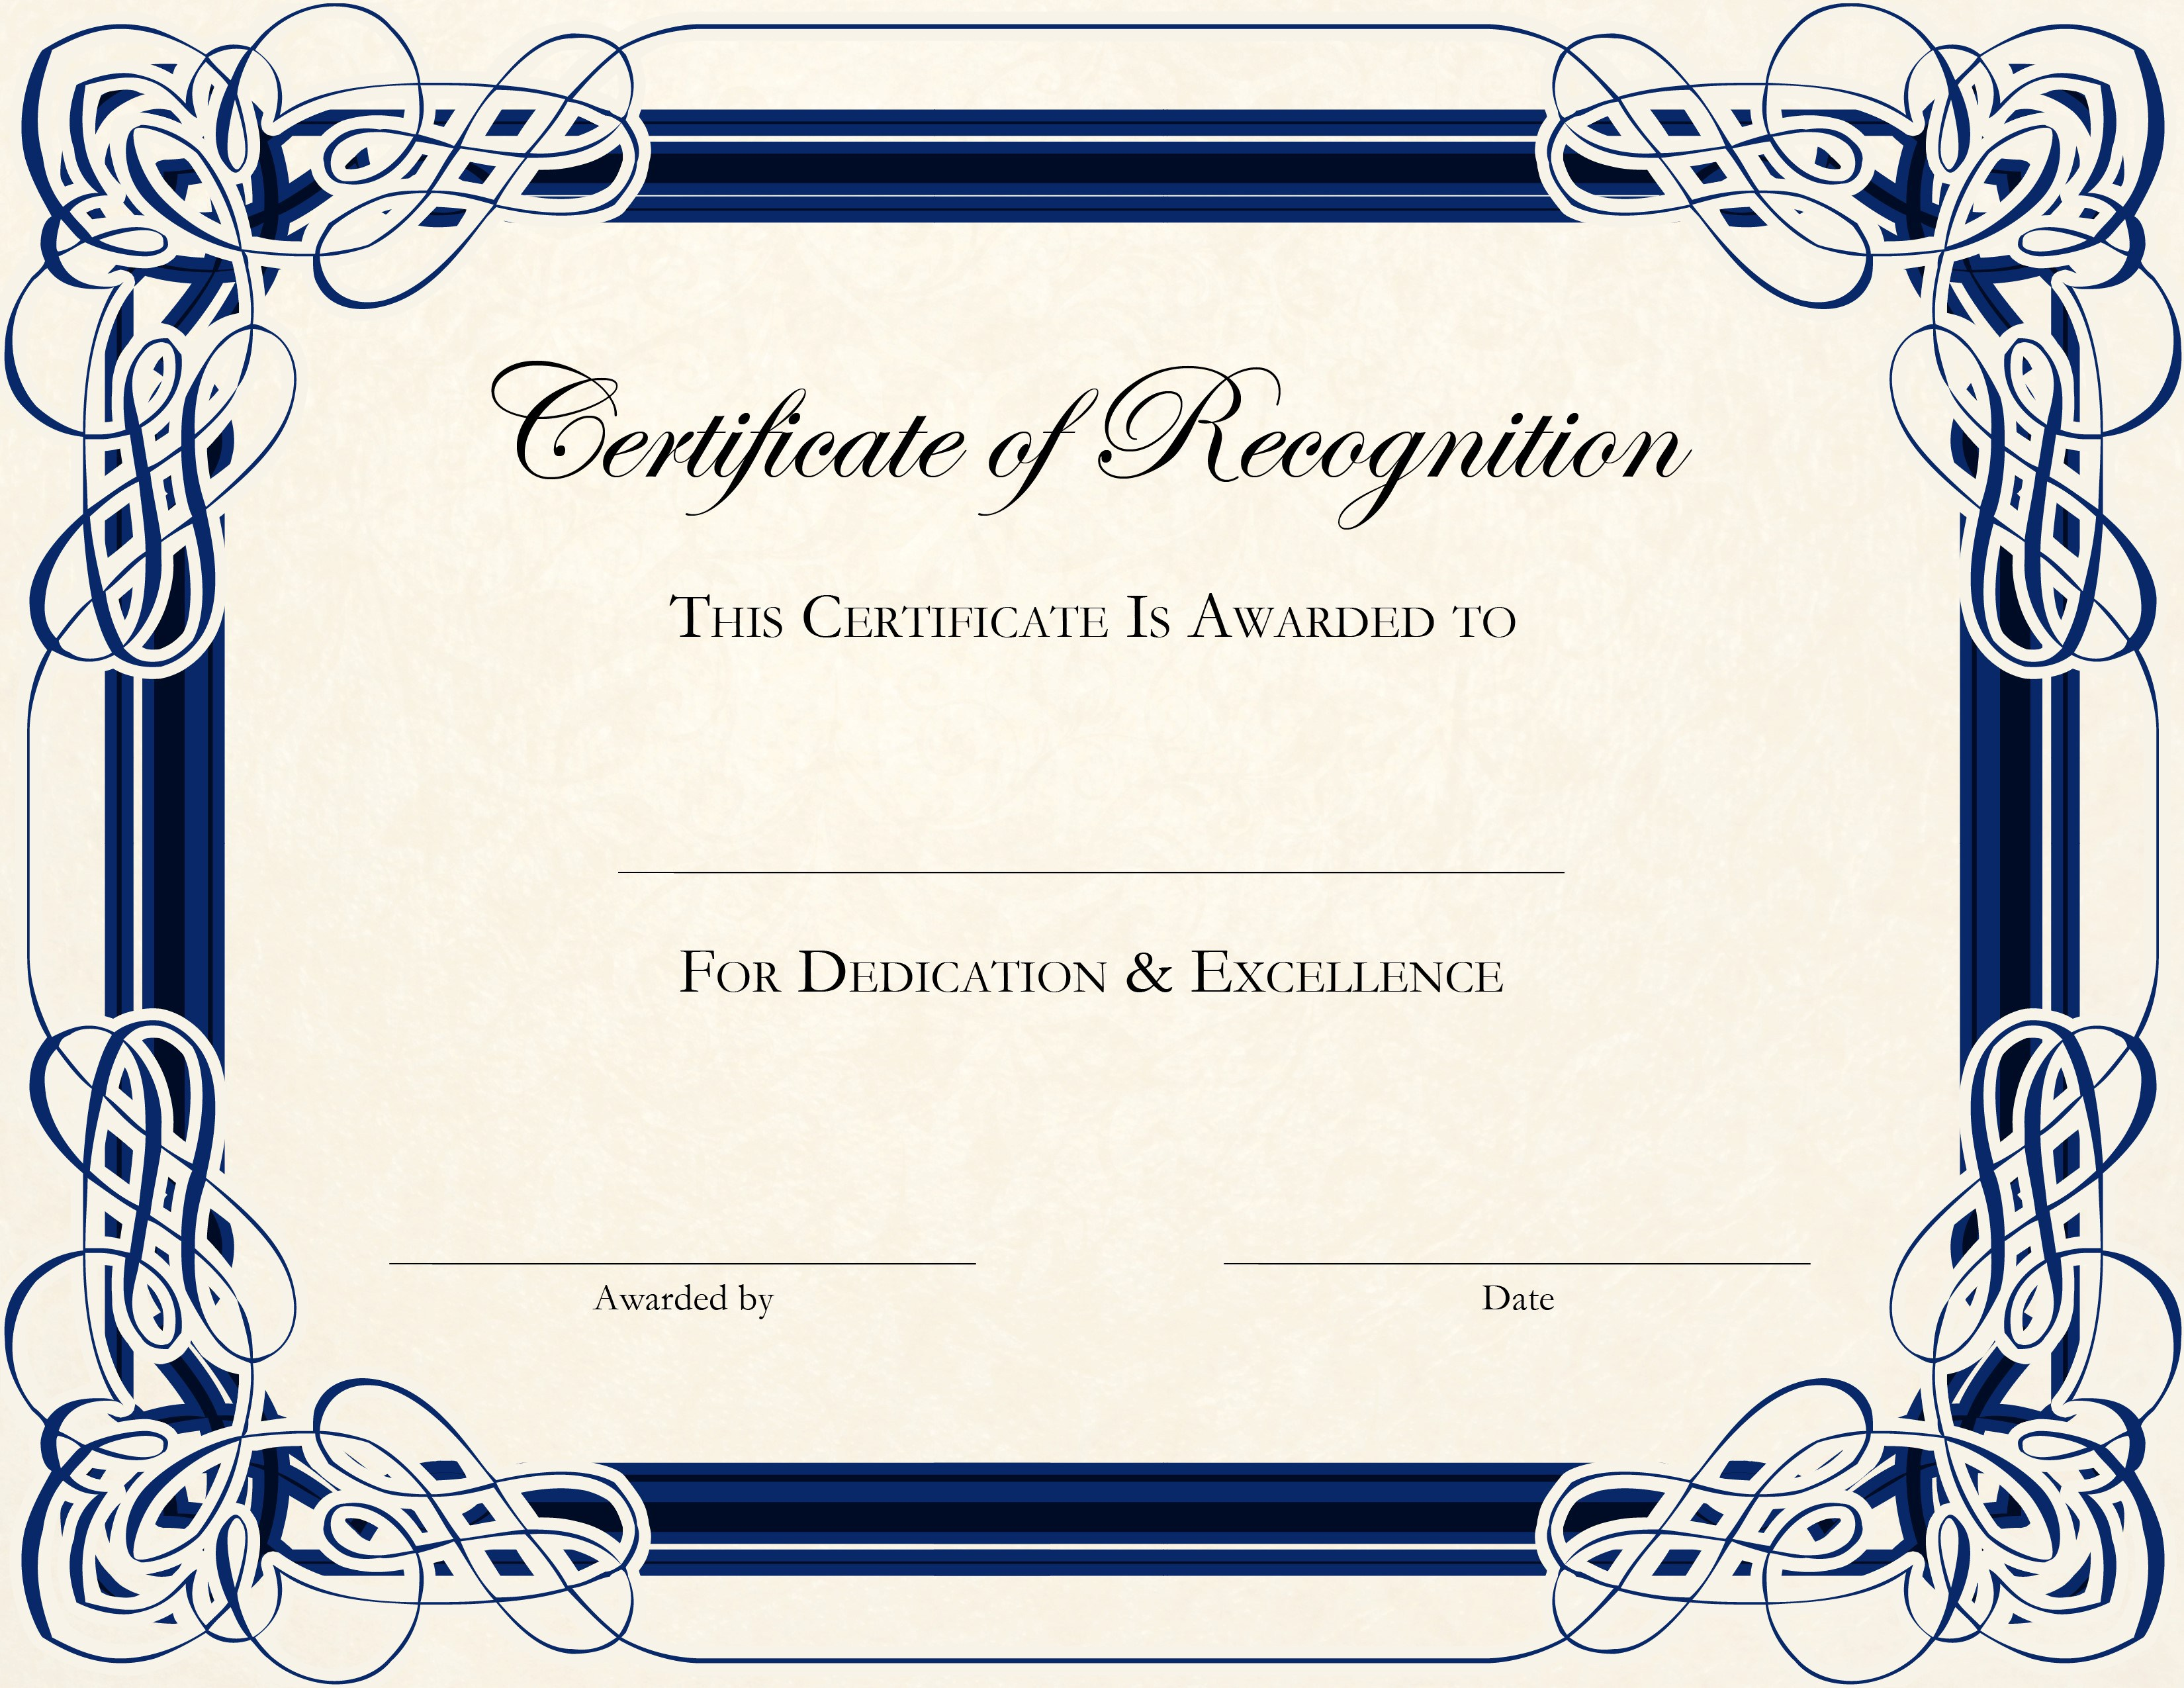 Certificate Template Free Printable   FREE DOWNLOAD